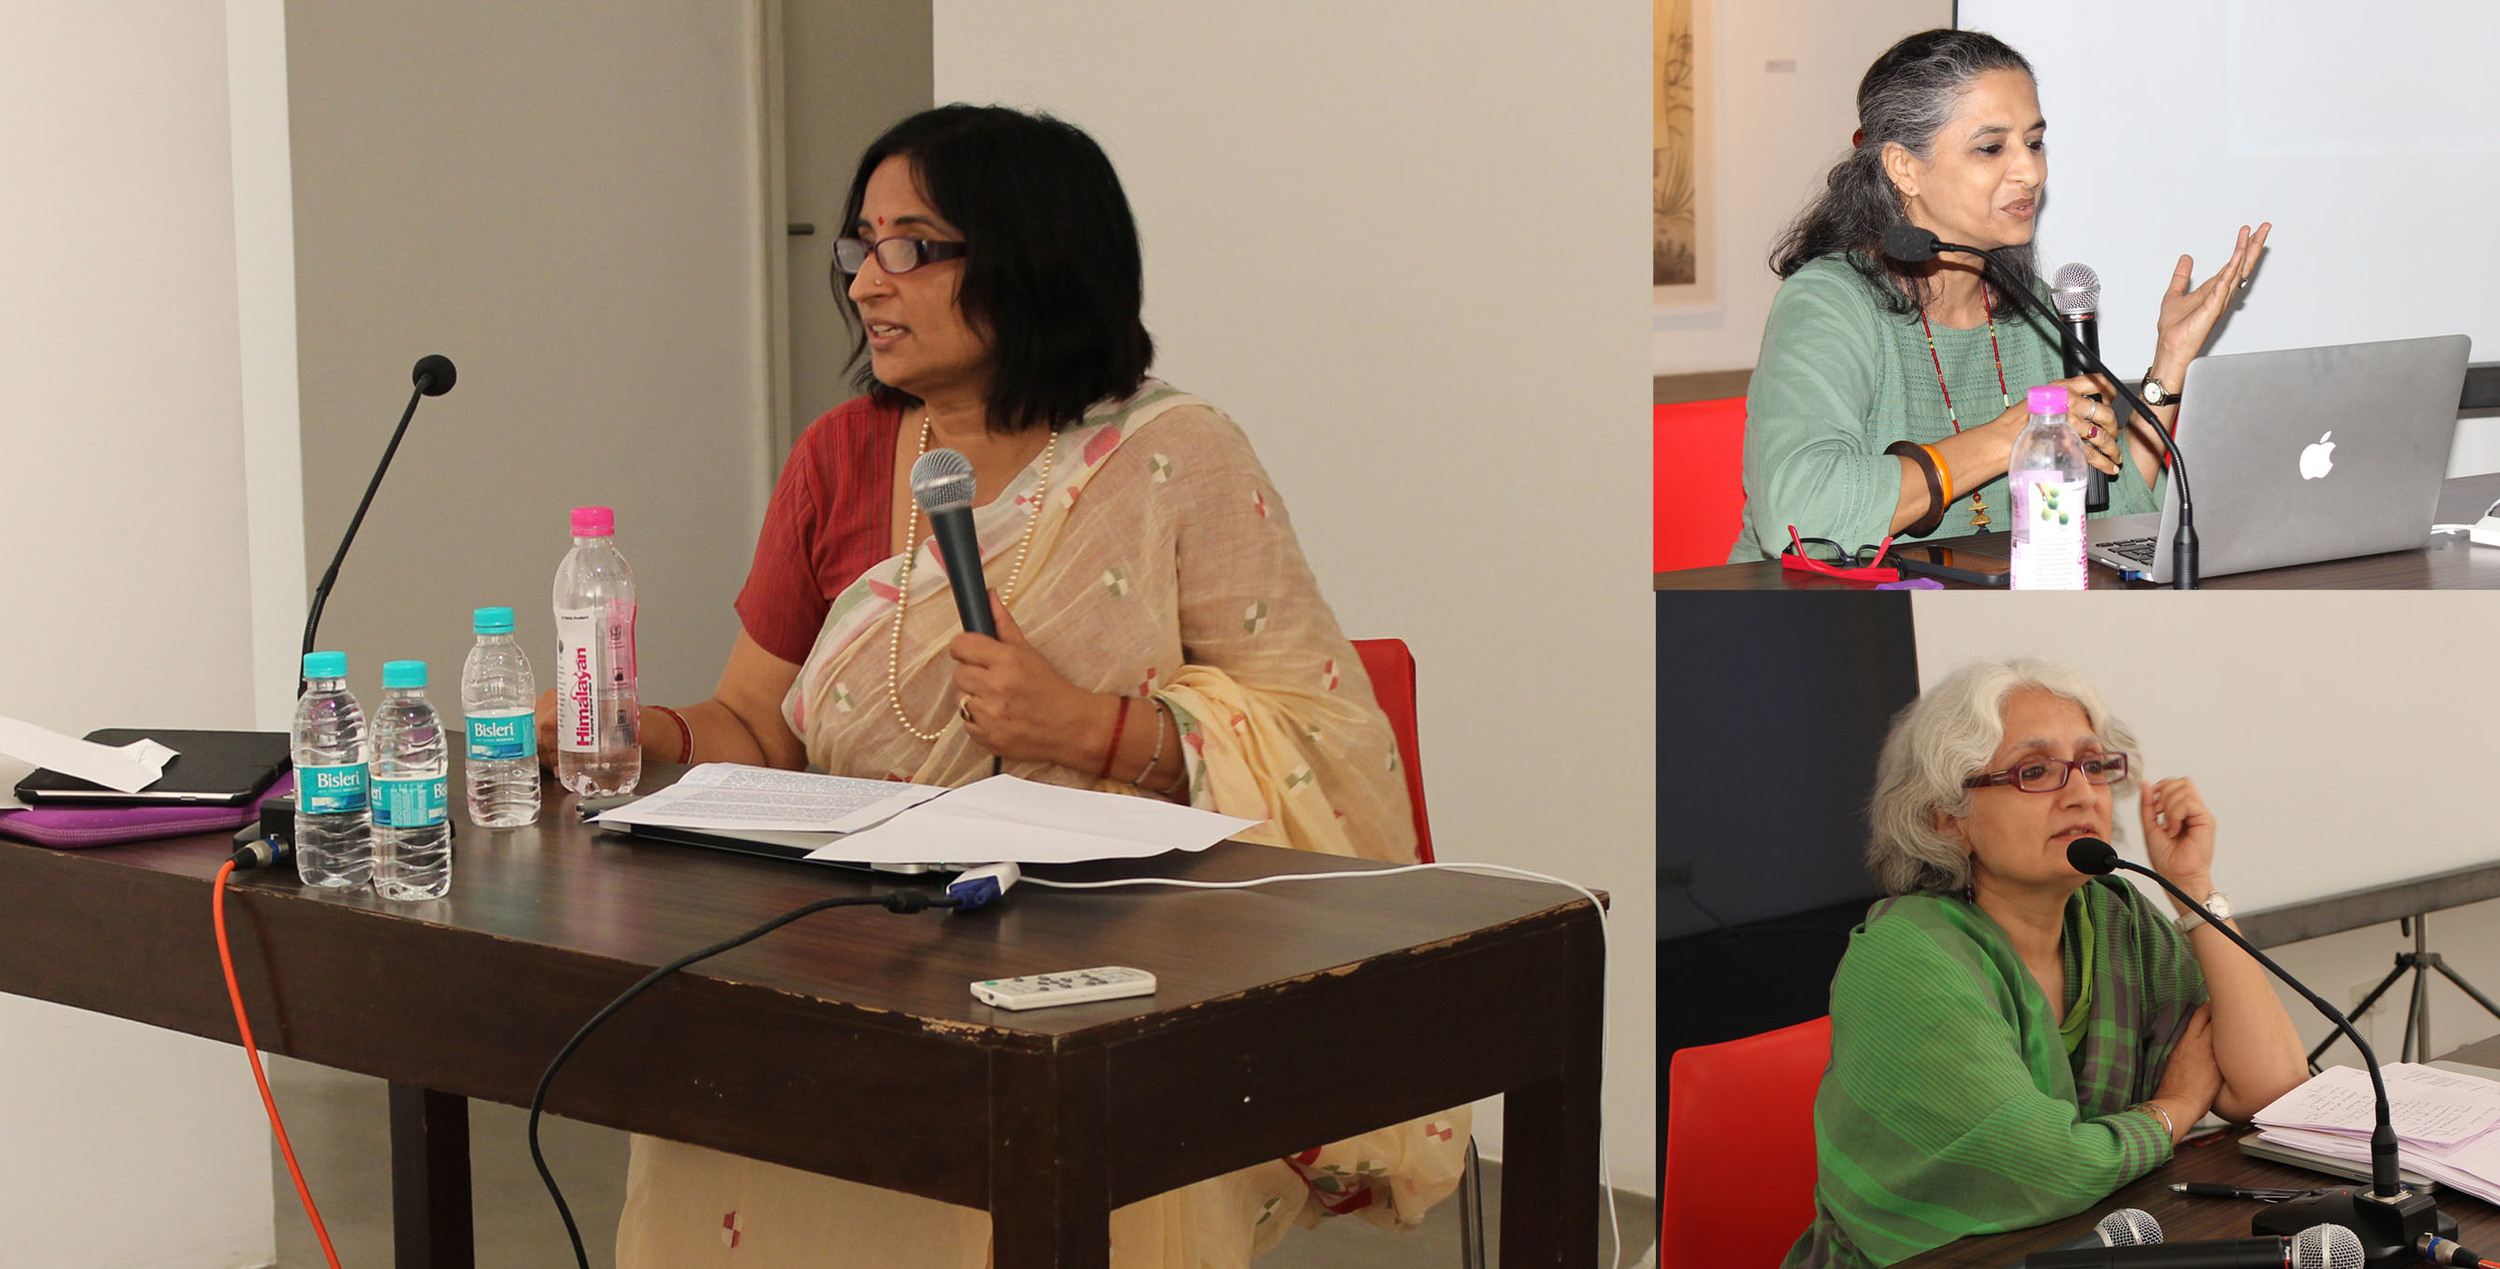 The speakers for the evening - Annapurna Garimella, Manisha Parekh, Chandrika Grover